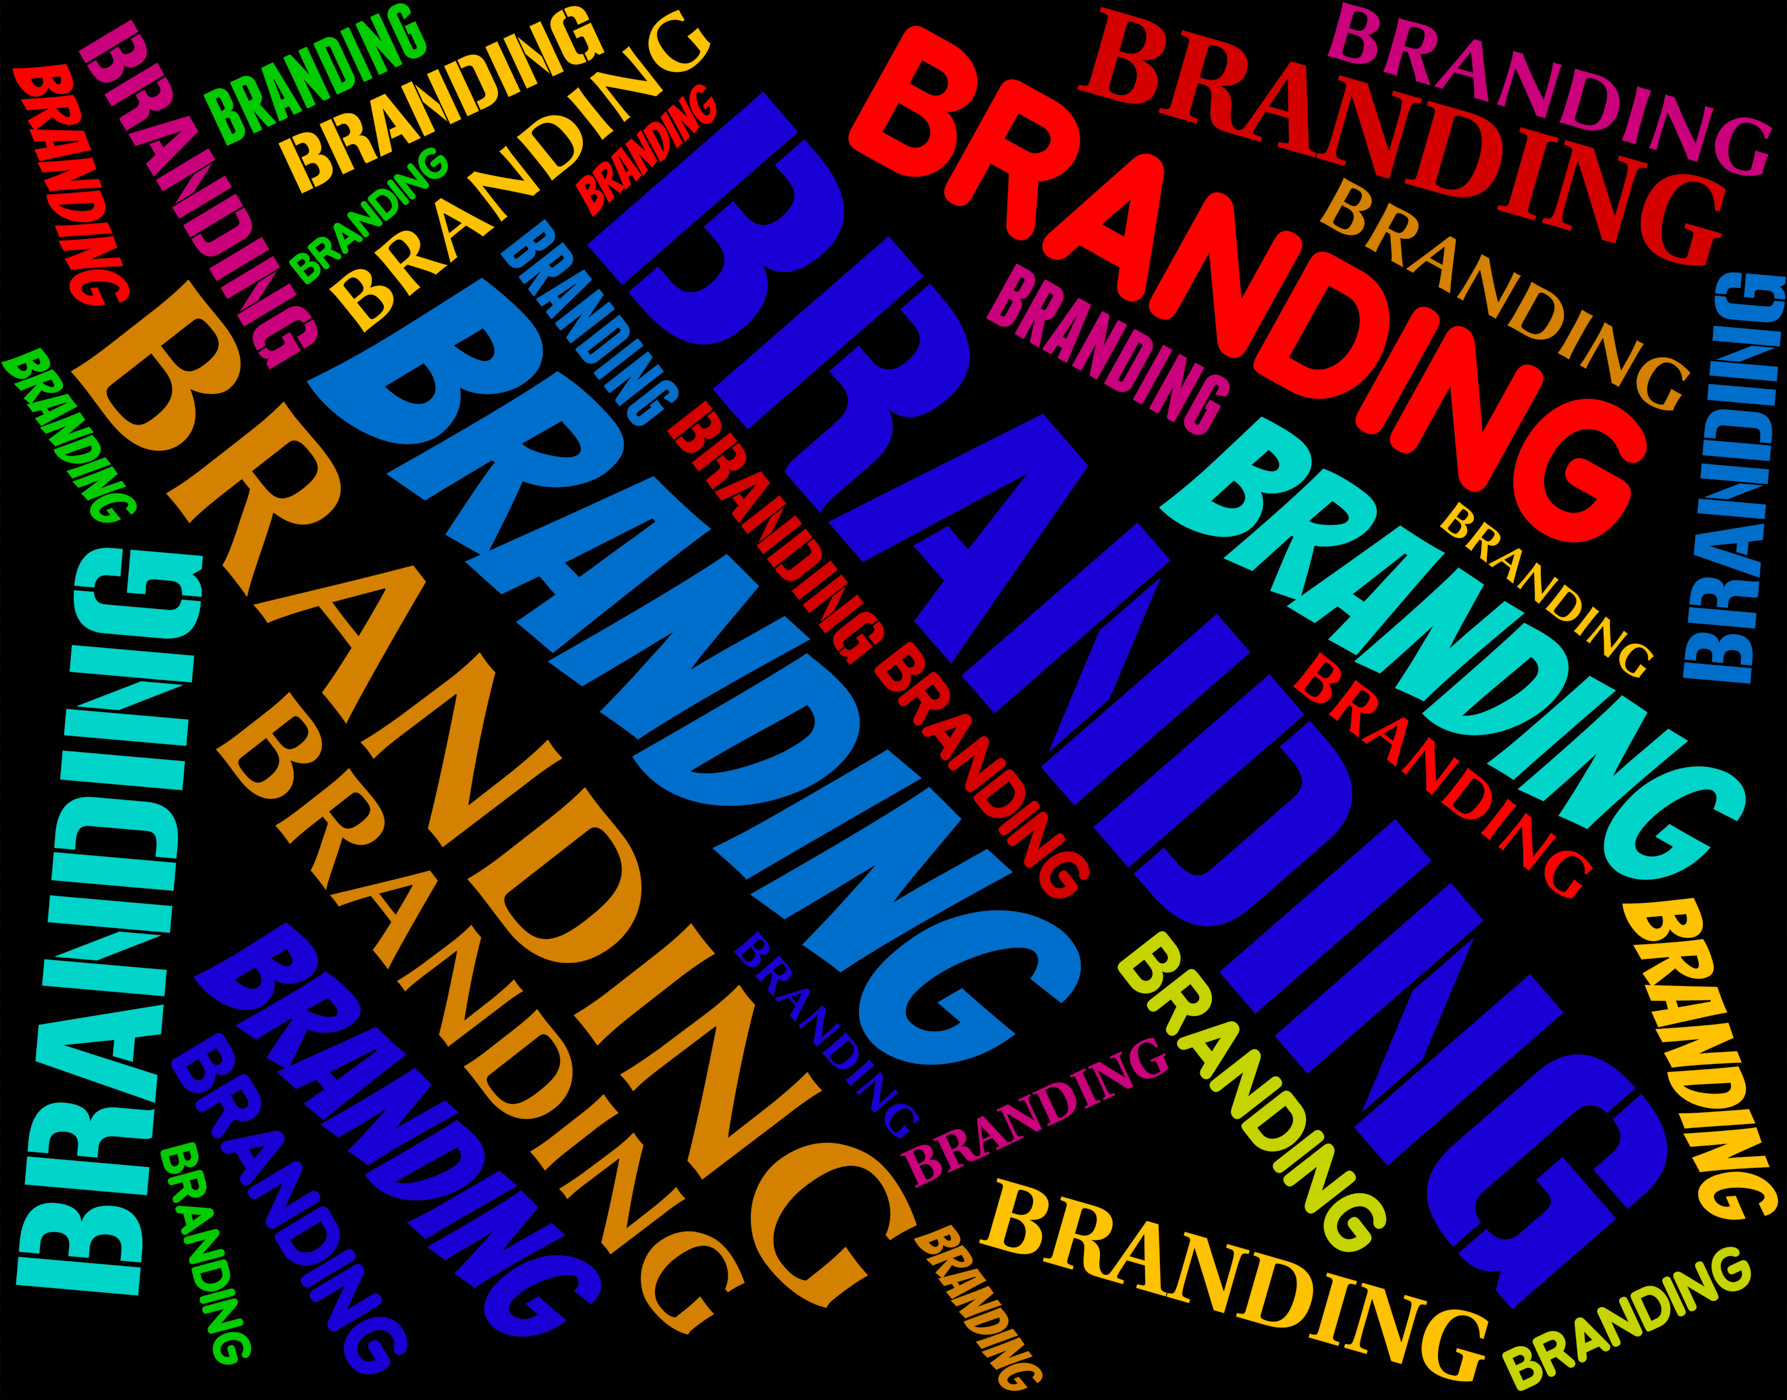 Branding Word Shows Words Label And Logos, Brand, Branded, Branding, Brandingword, HQ Photo